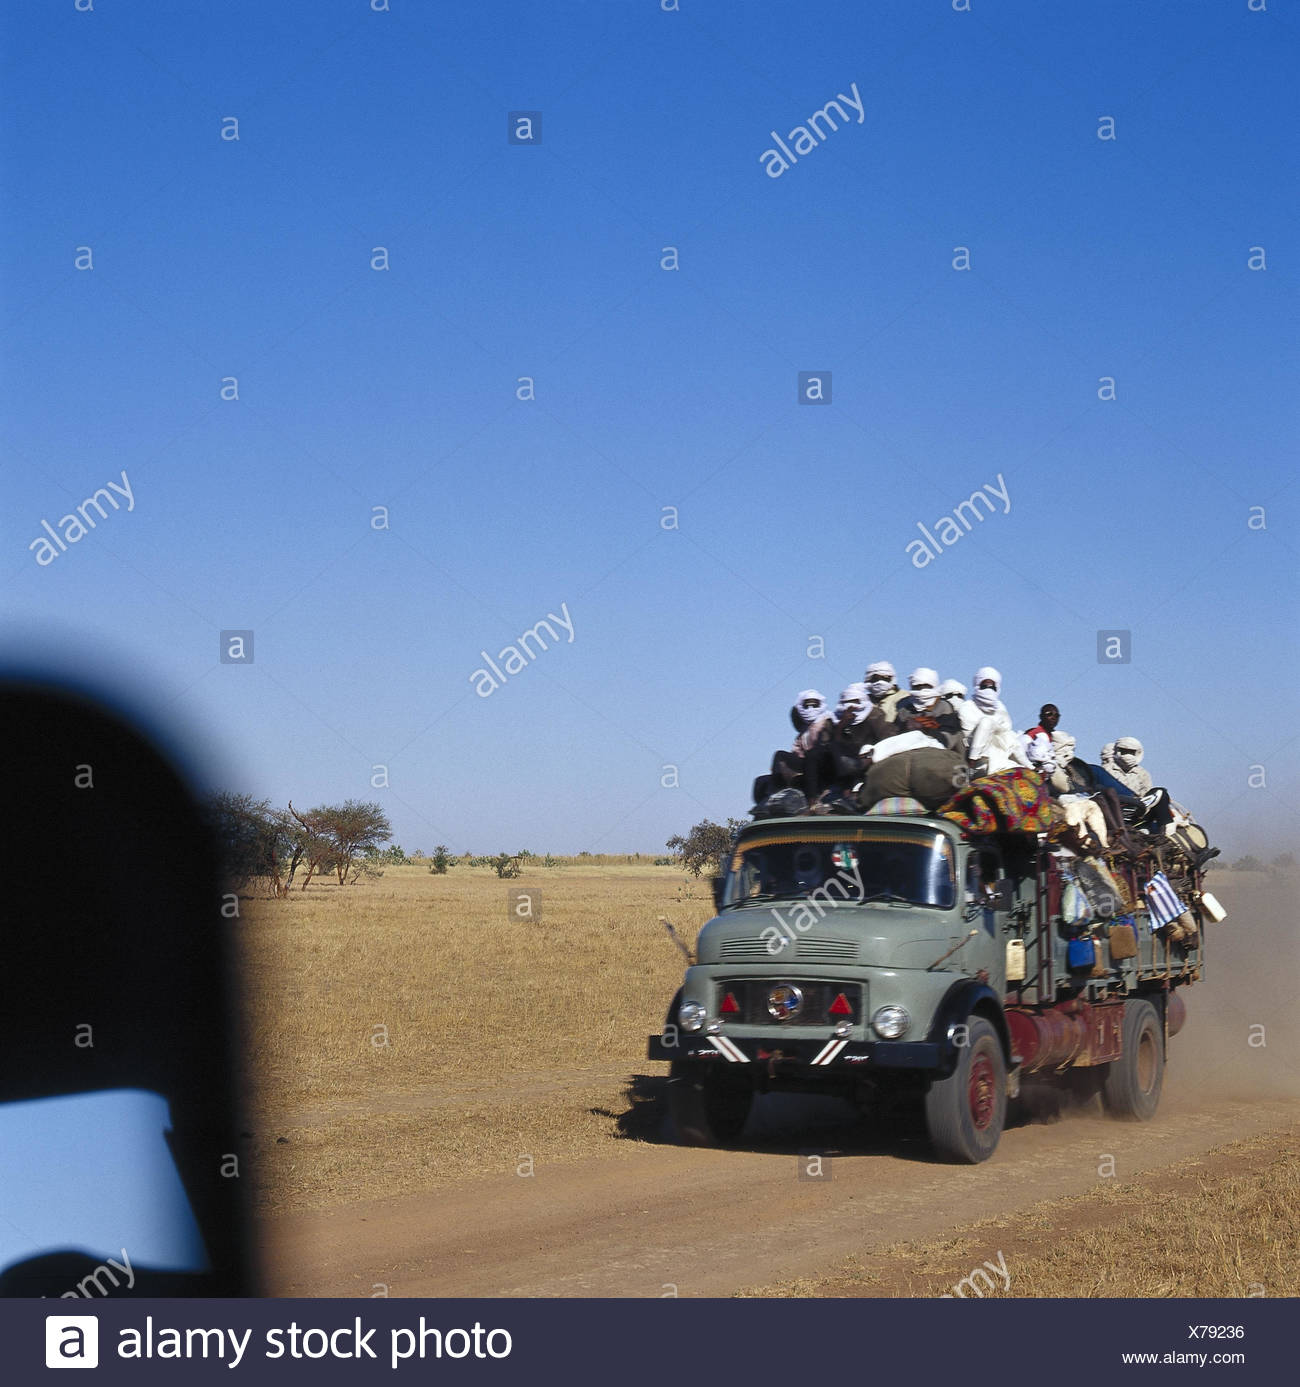 Chad, Borkou, wadi Doum, Sand runway, truck, charge, costs, people Central, Africa, landlocked country, Sahara, desert, wild scenery, truck, truck, transport, promotion, full-charged, goods, locals, outside - Stock Image